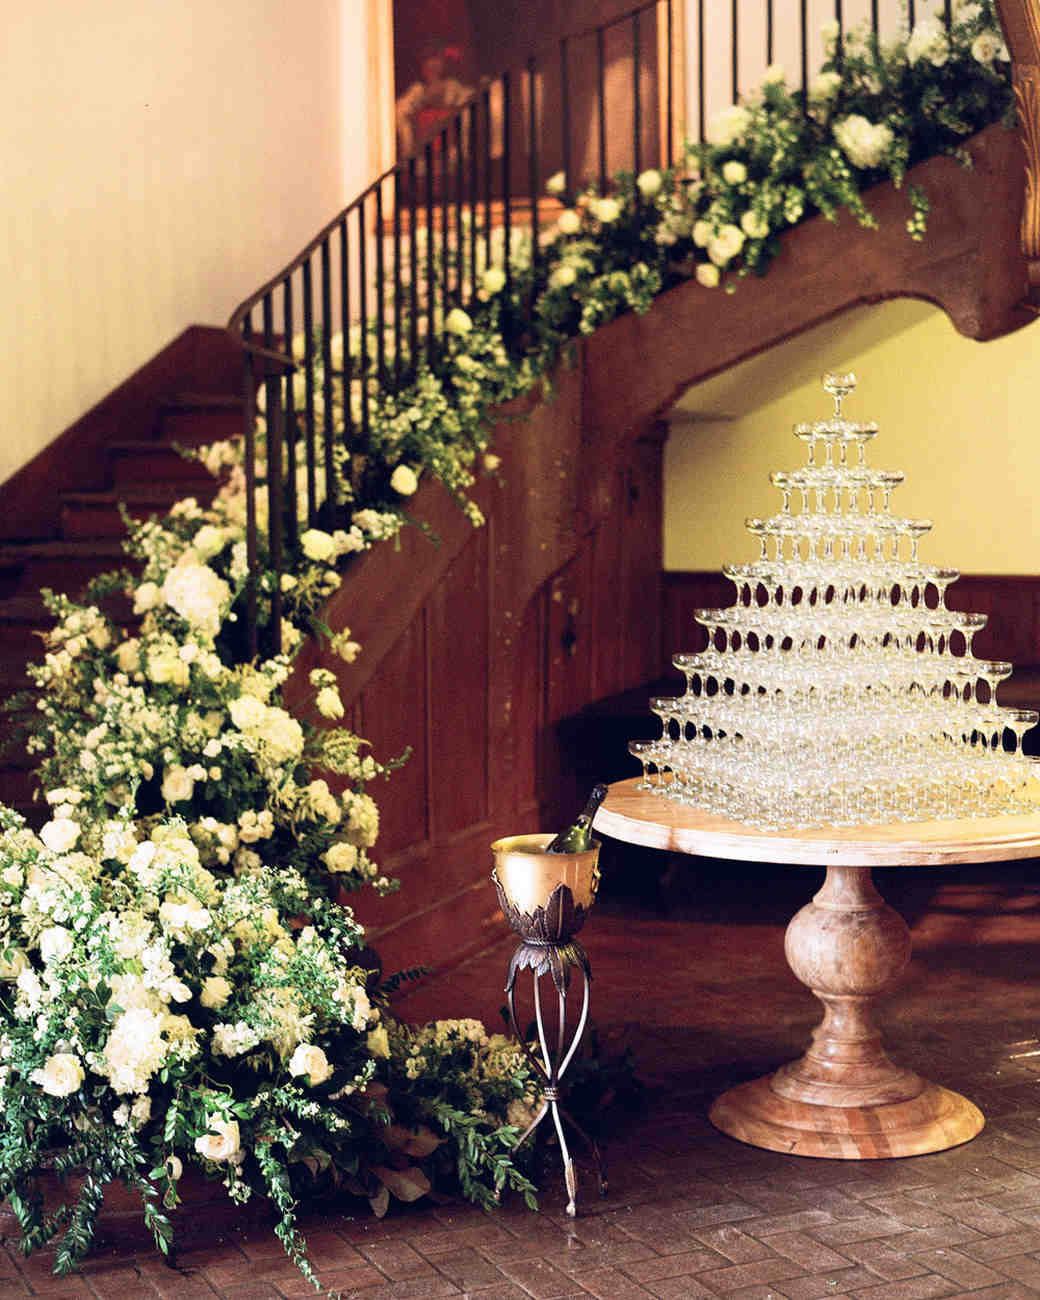 Black Tie Wedding Ideas: 21 Champagne Towers To Copy For Your Own Wedding Reception